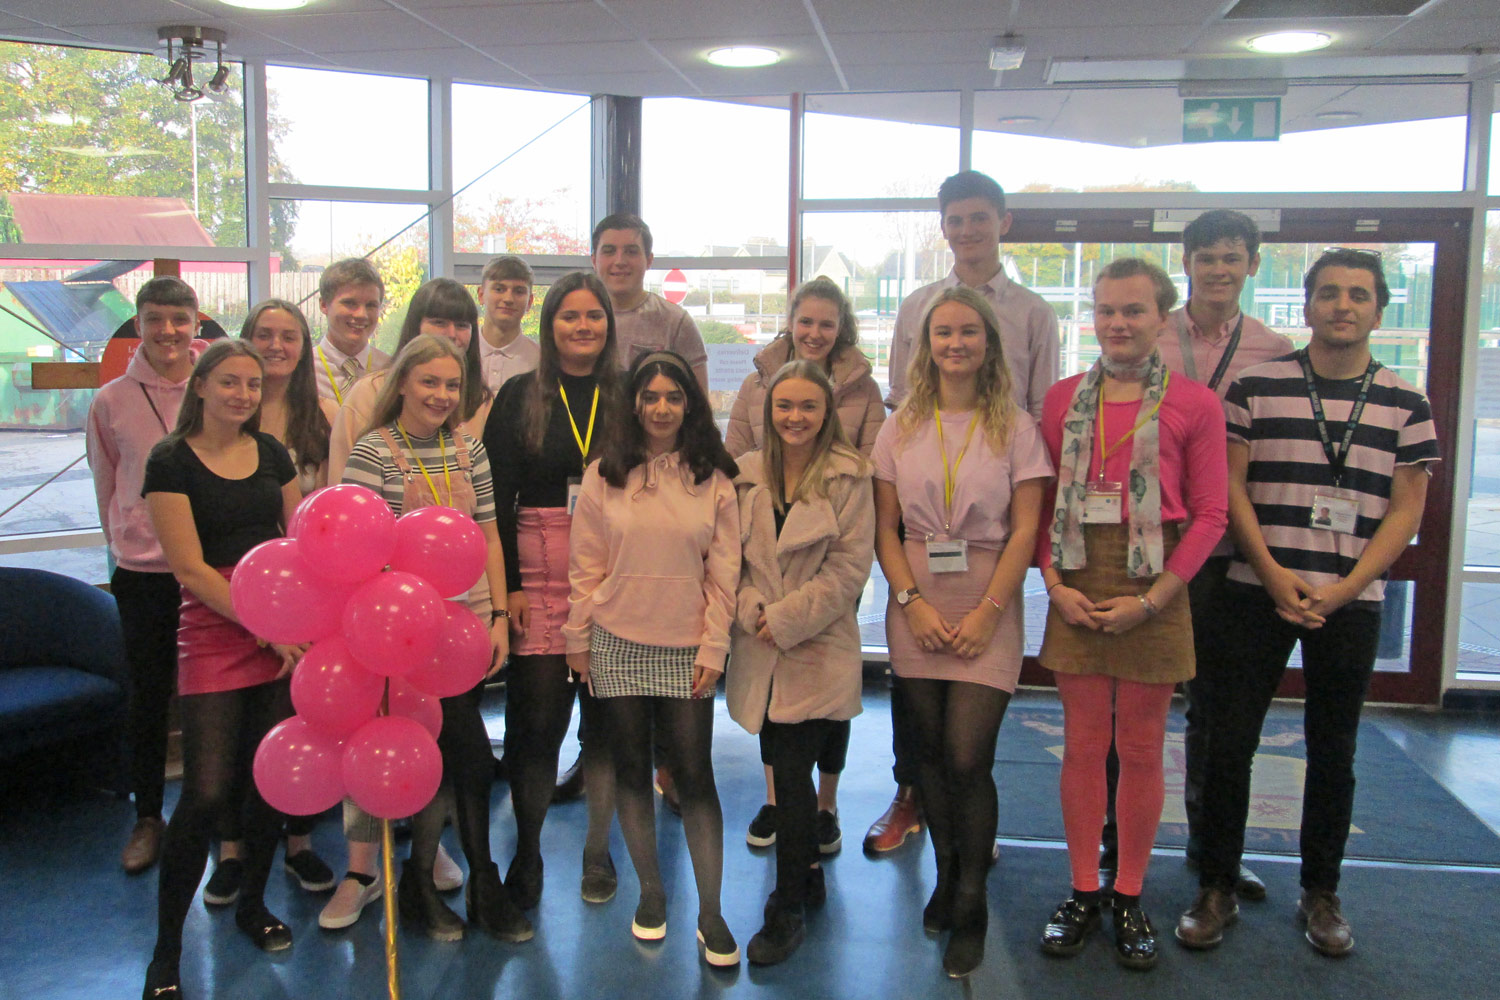 Photo: Sixth form Students wearing pink and living out the St. Mary's values on Pink Day, Friday October 19, 2018